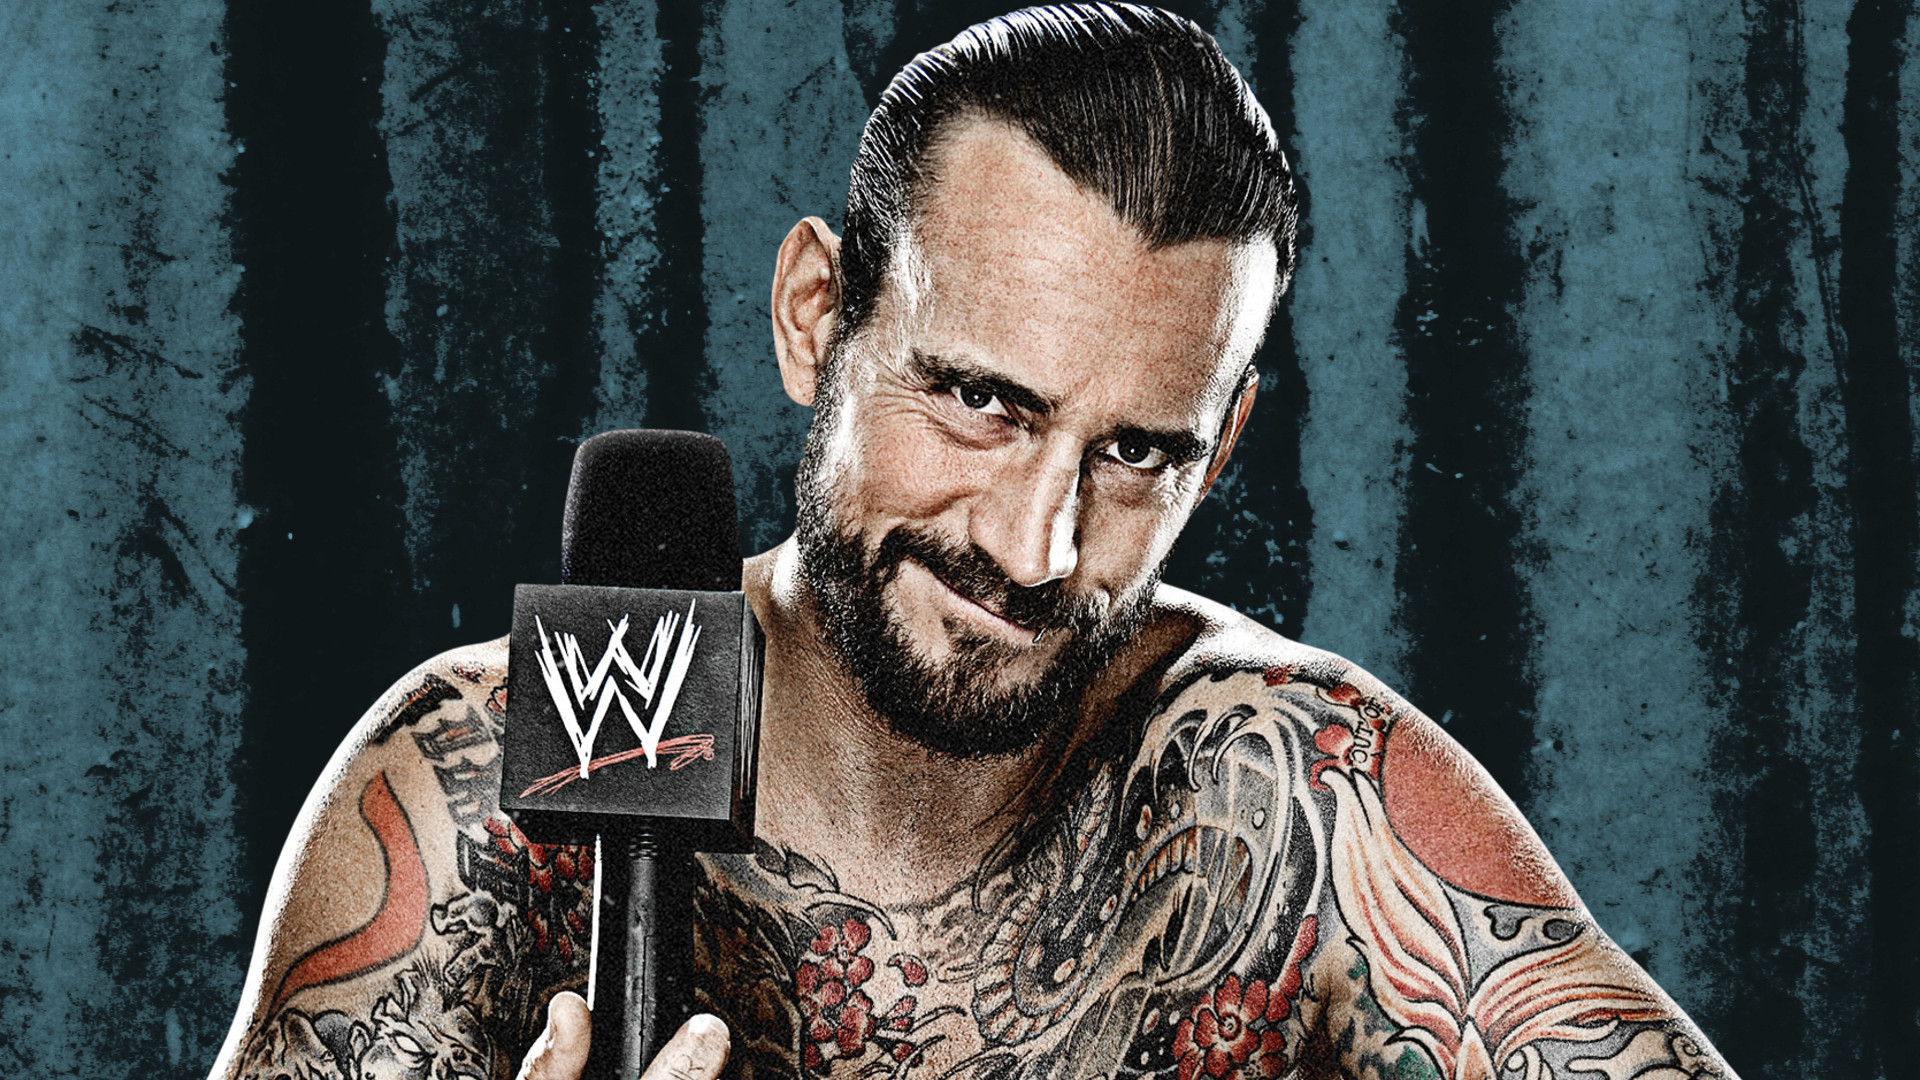 Cm punk 2018 best in the world wallpaper 70 images for Best wallpaper in the world